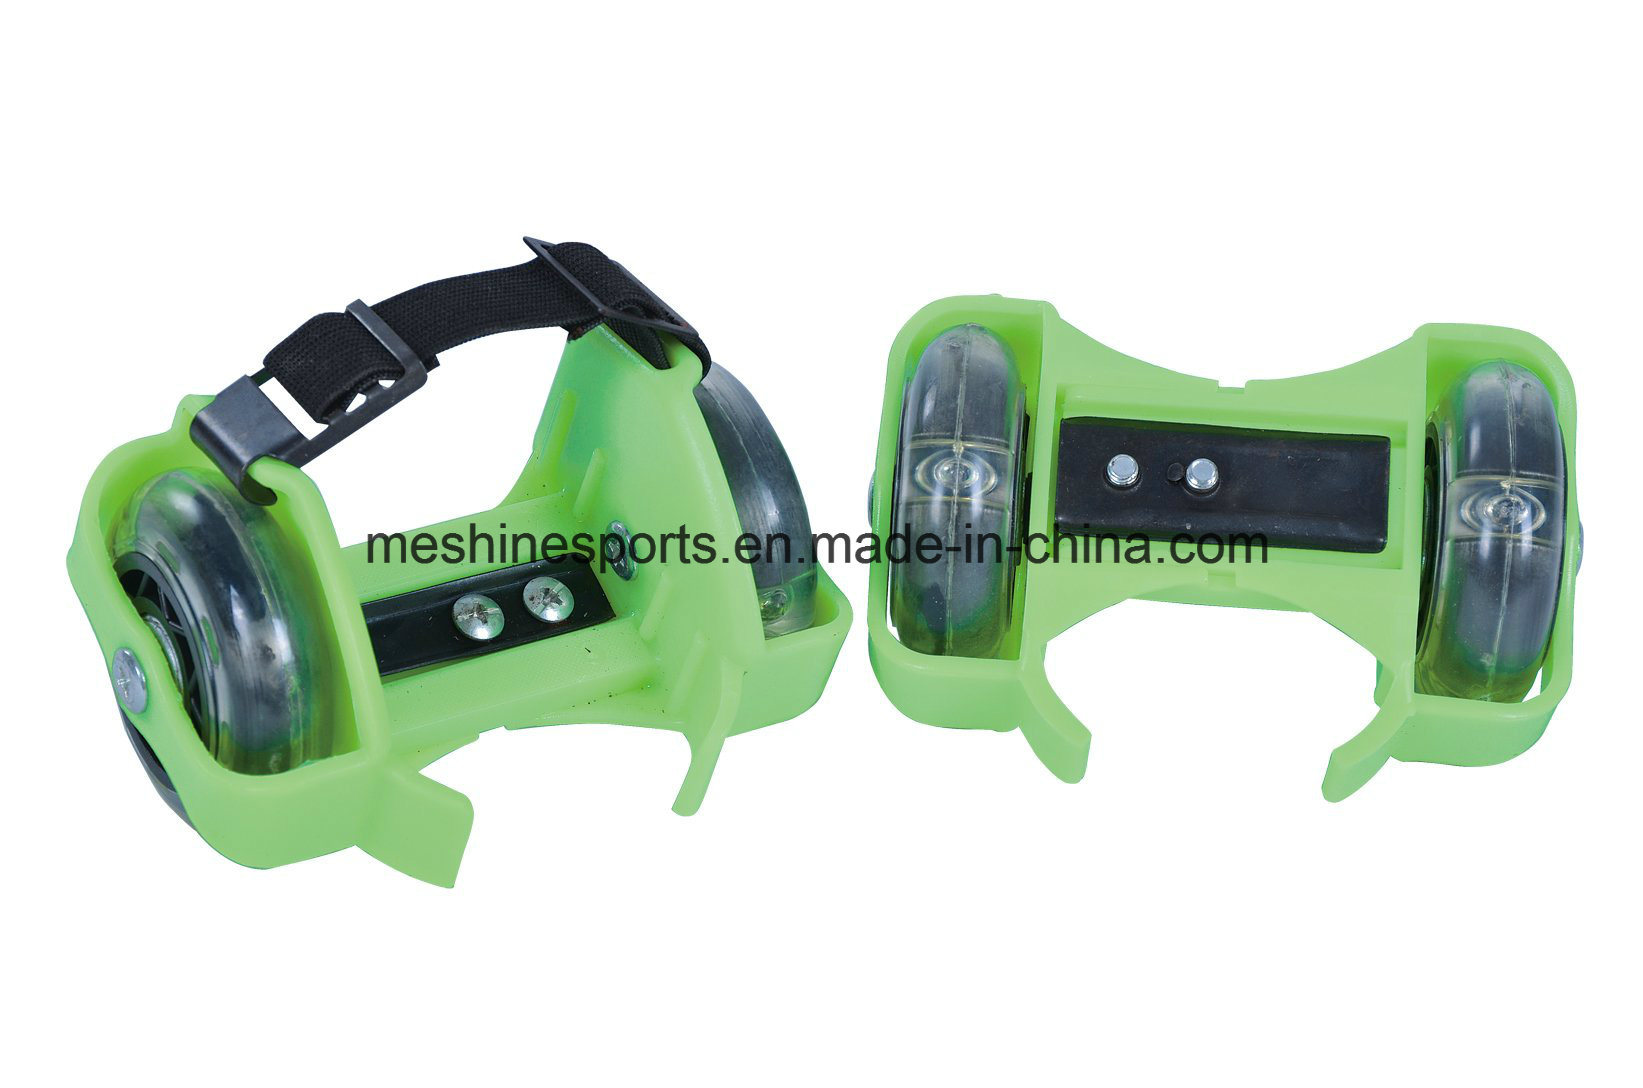 Ce Approval Two-Wheel Adjustable Flashing Roller Shoes for Skate